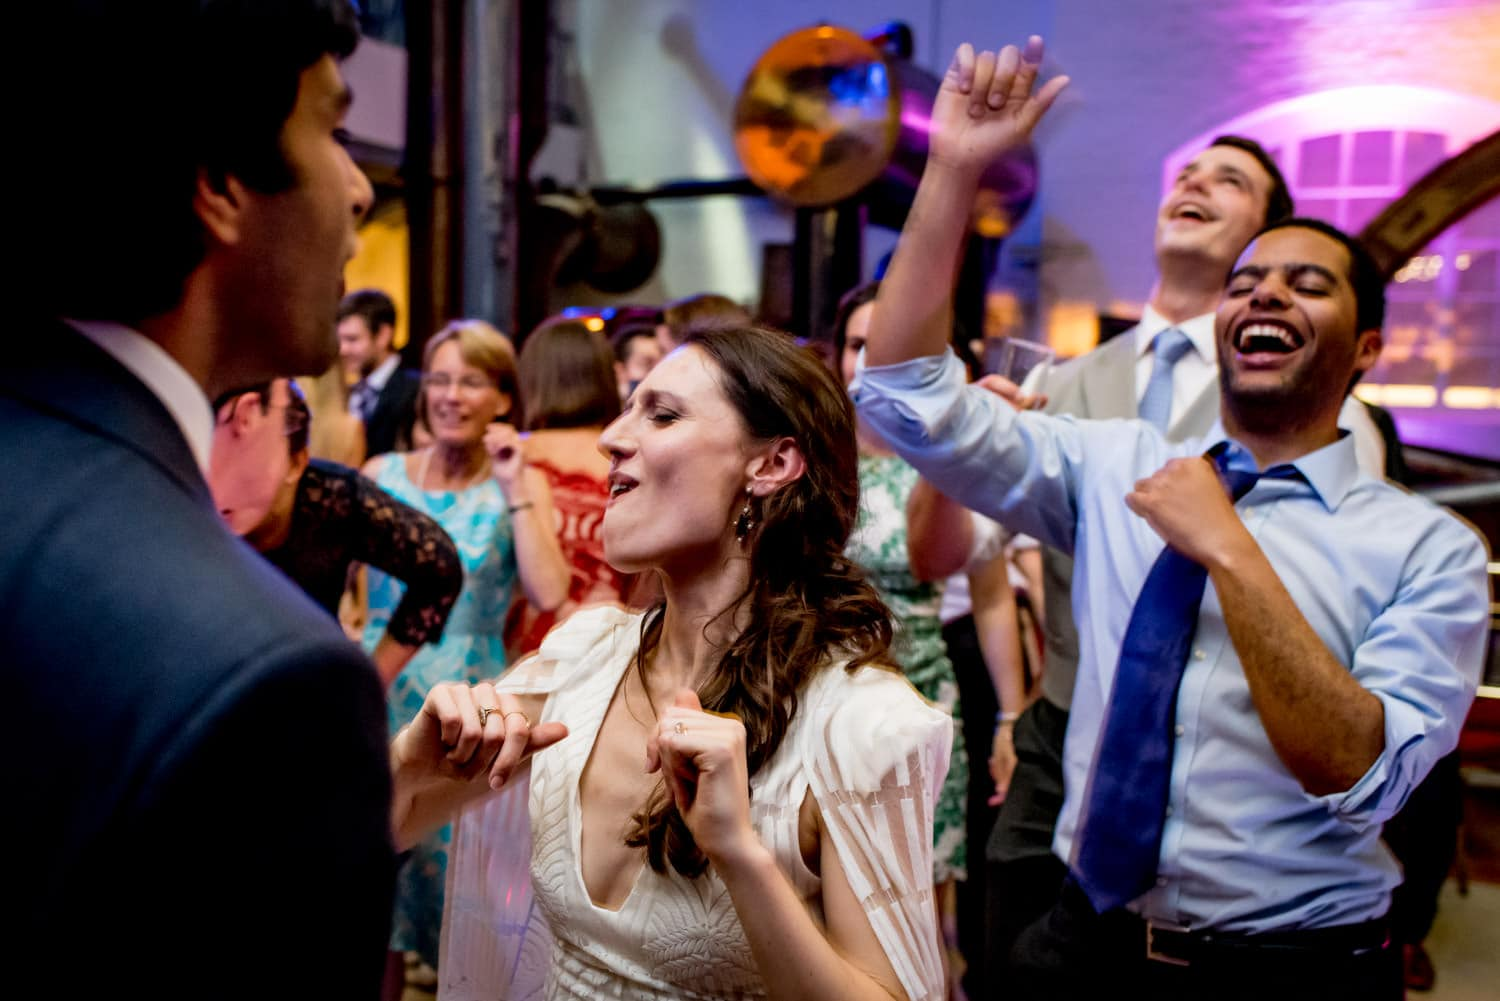 bride dancing at her wedding at the London museum of water and steam